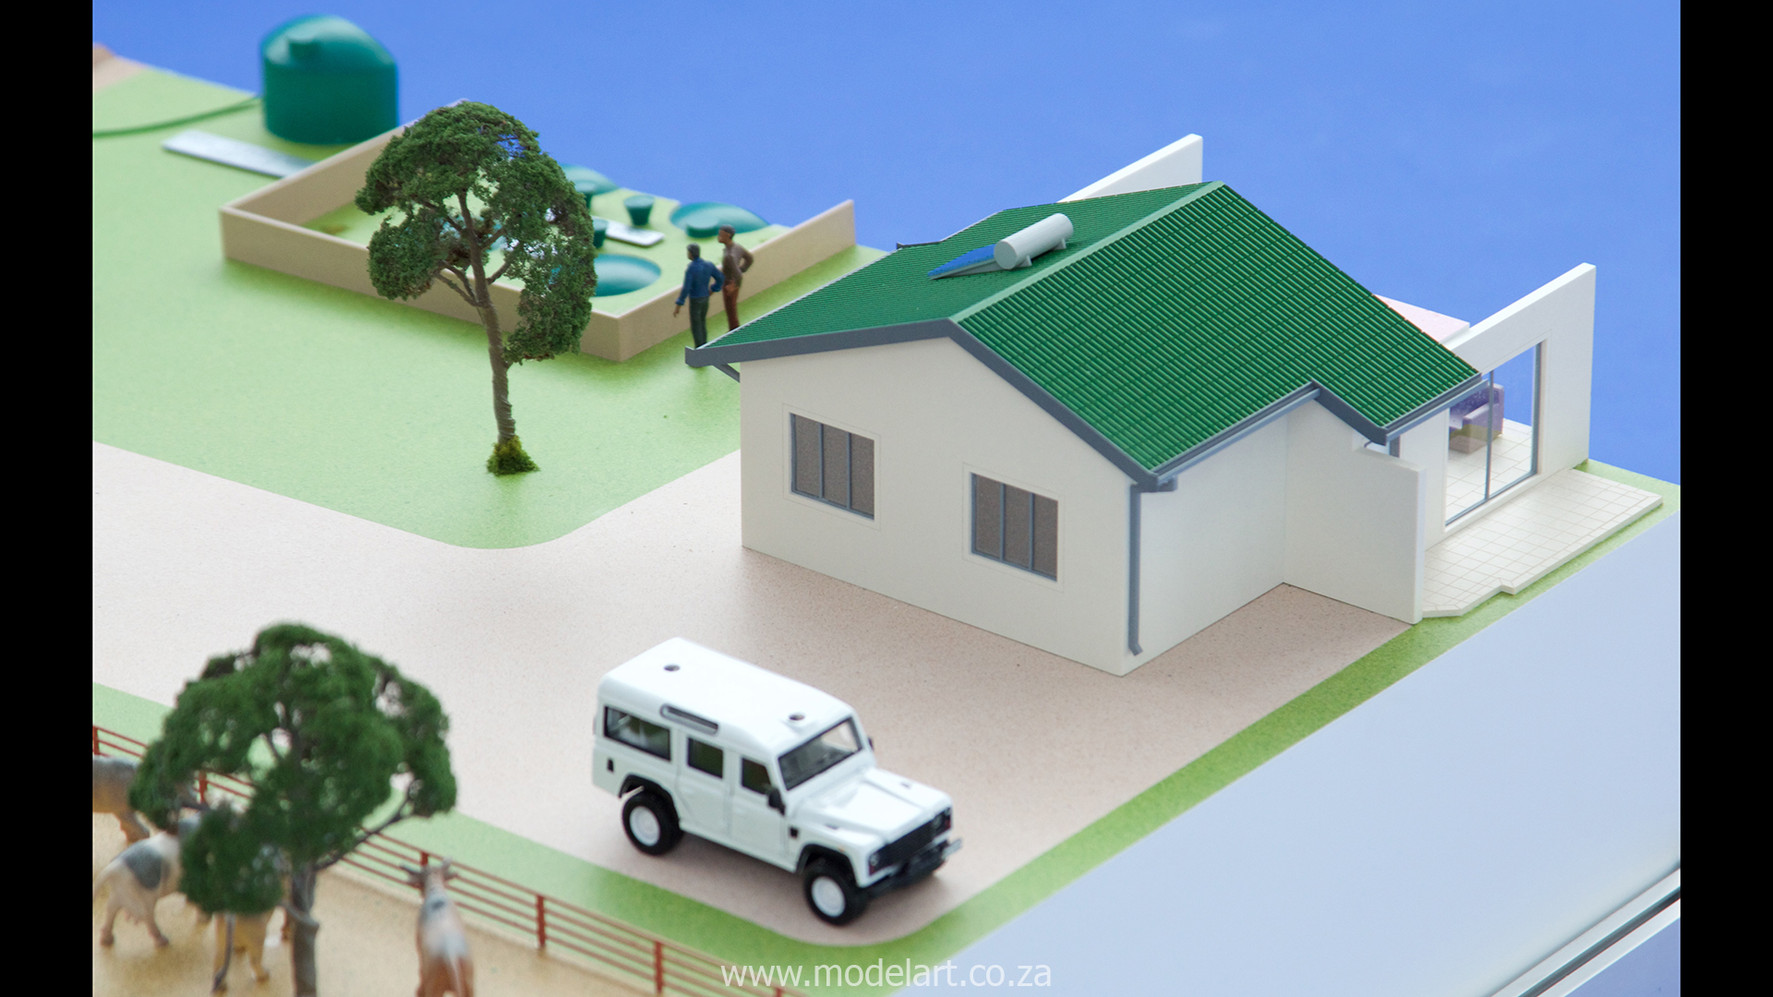 Architectural-Scale-Model-Industrial-Afgri Biogas-4